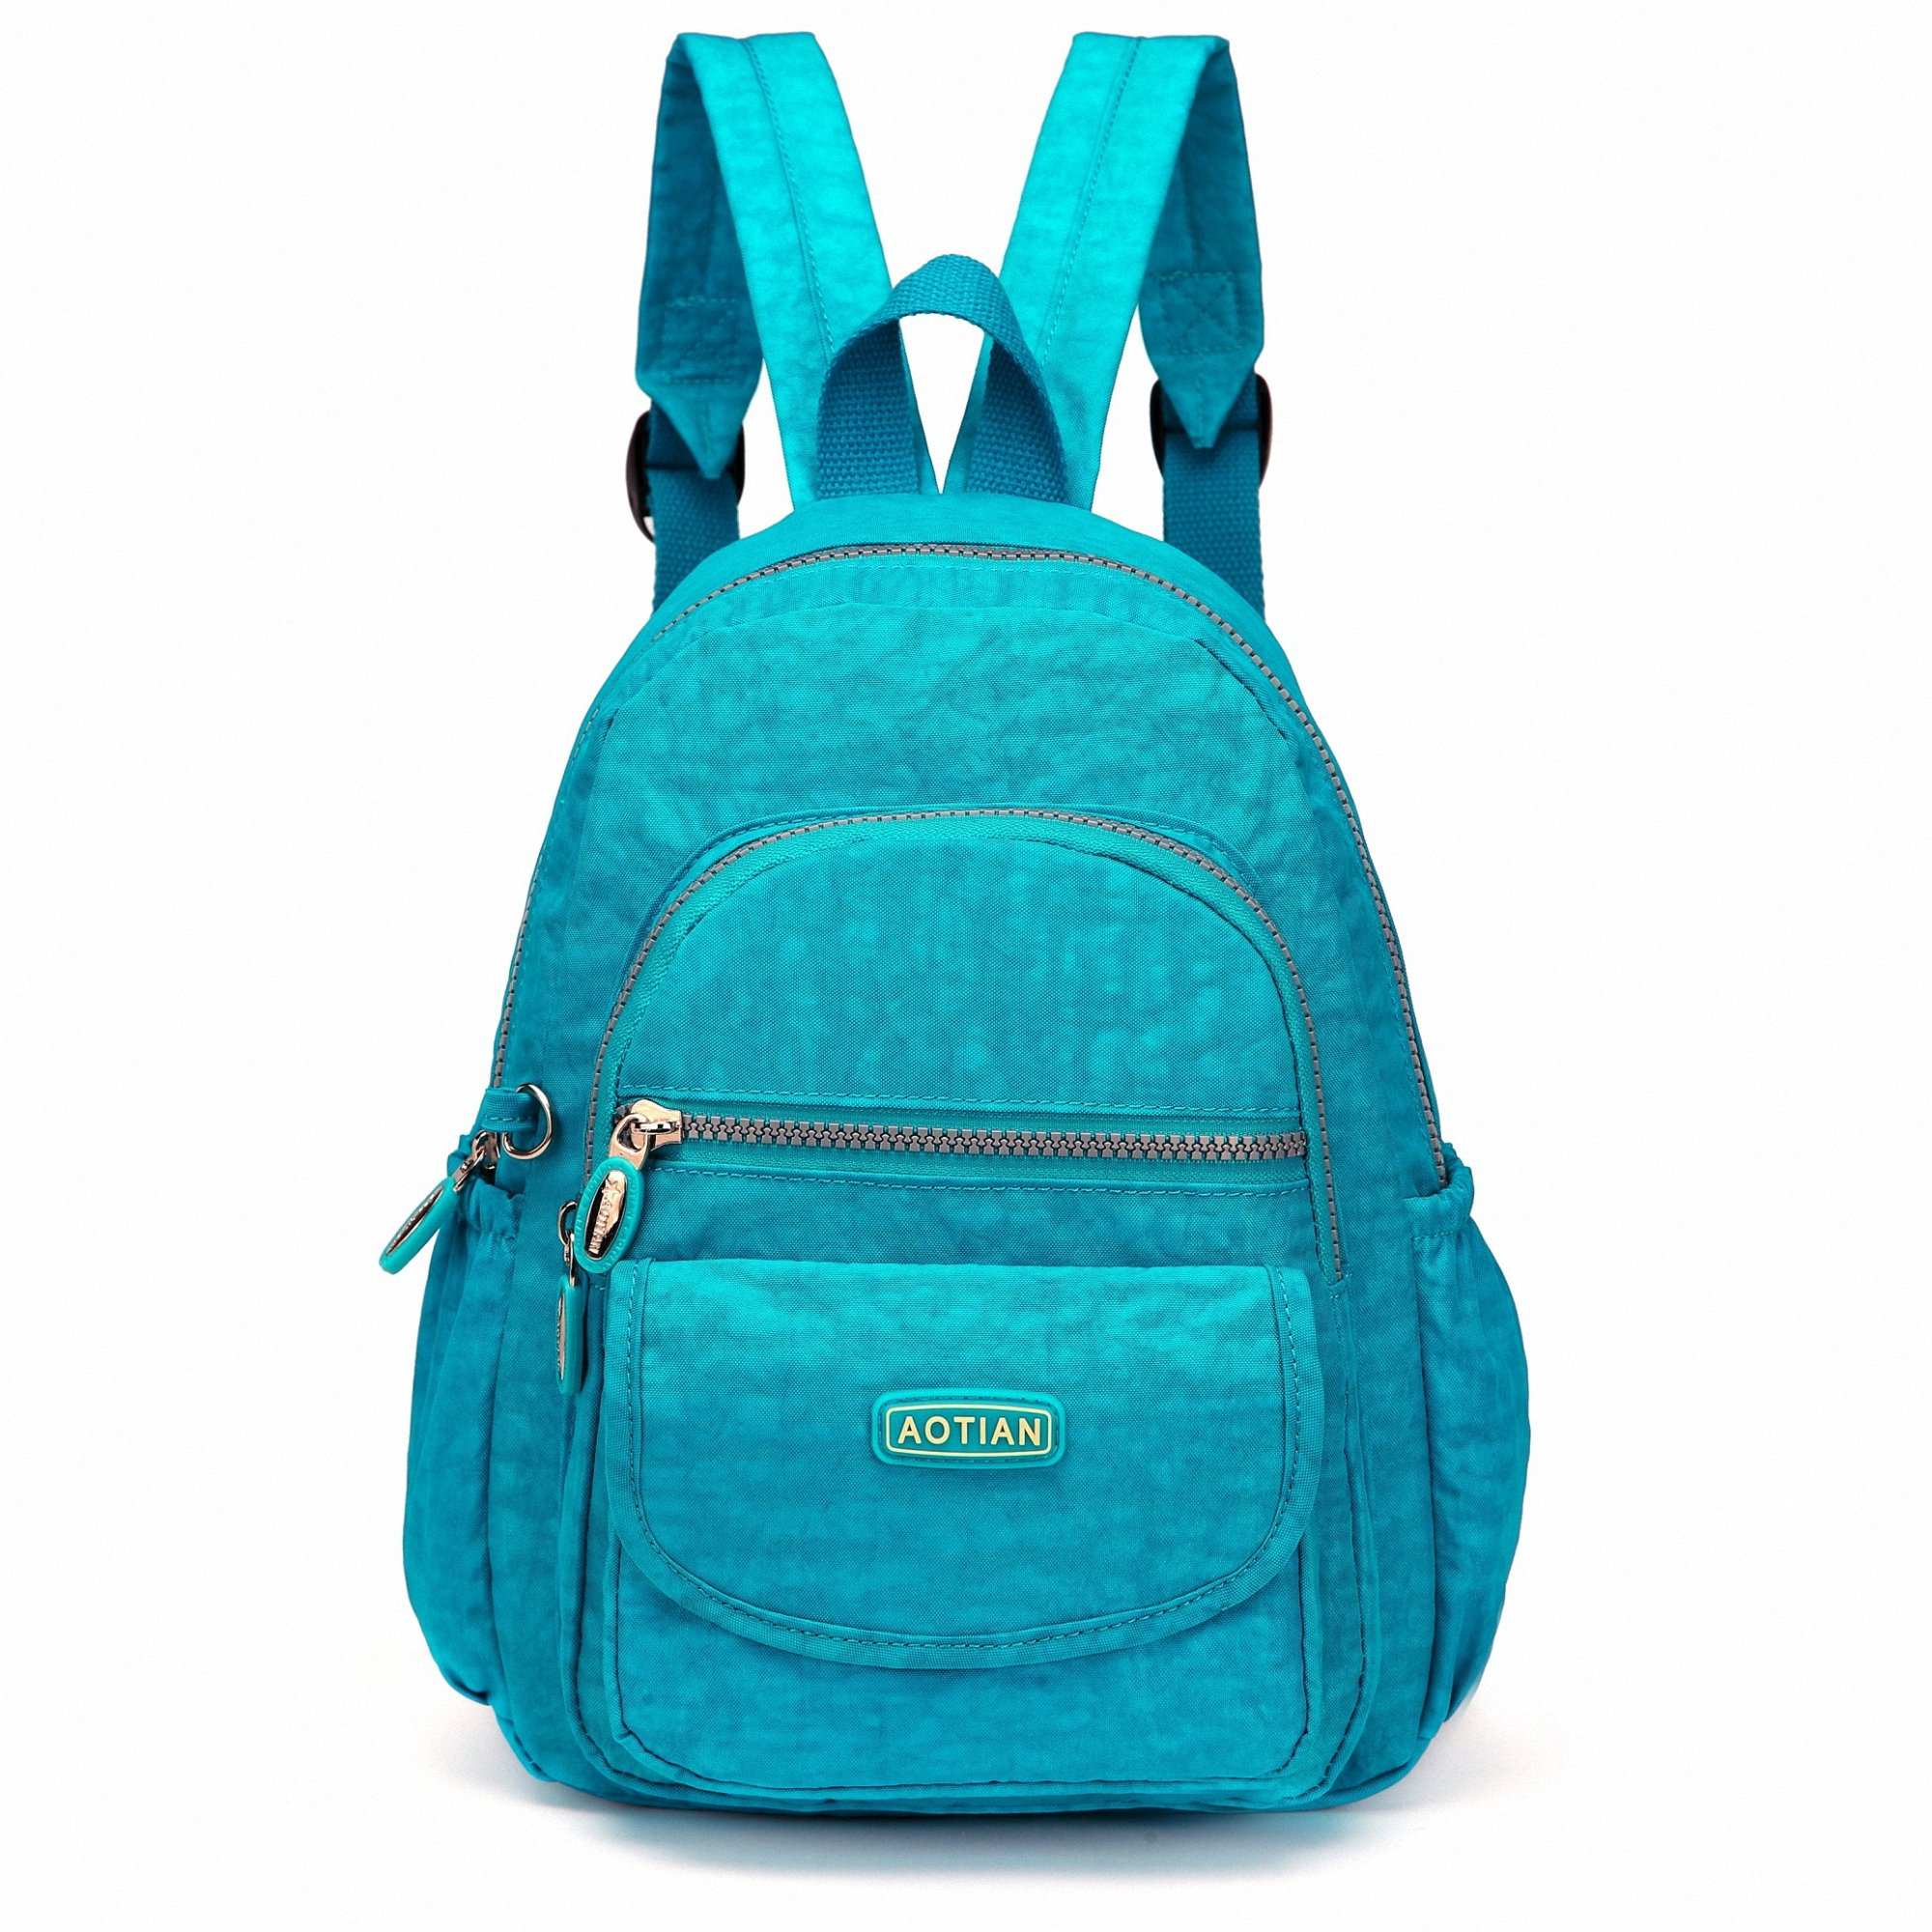 9ea044659132 AOTIAN Mini Nylon Women Backpacks Casual Lightweight Strong Small Packback  Daypack for Girls Cycling Hiking Camping Travel Outdoor Wake Blue